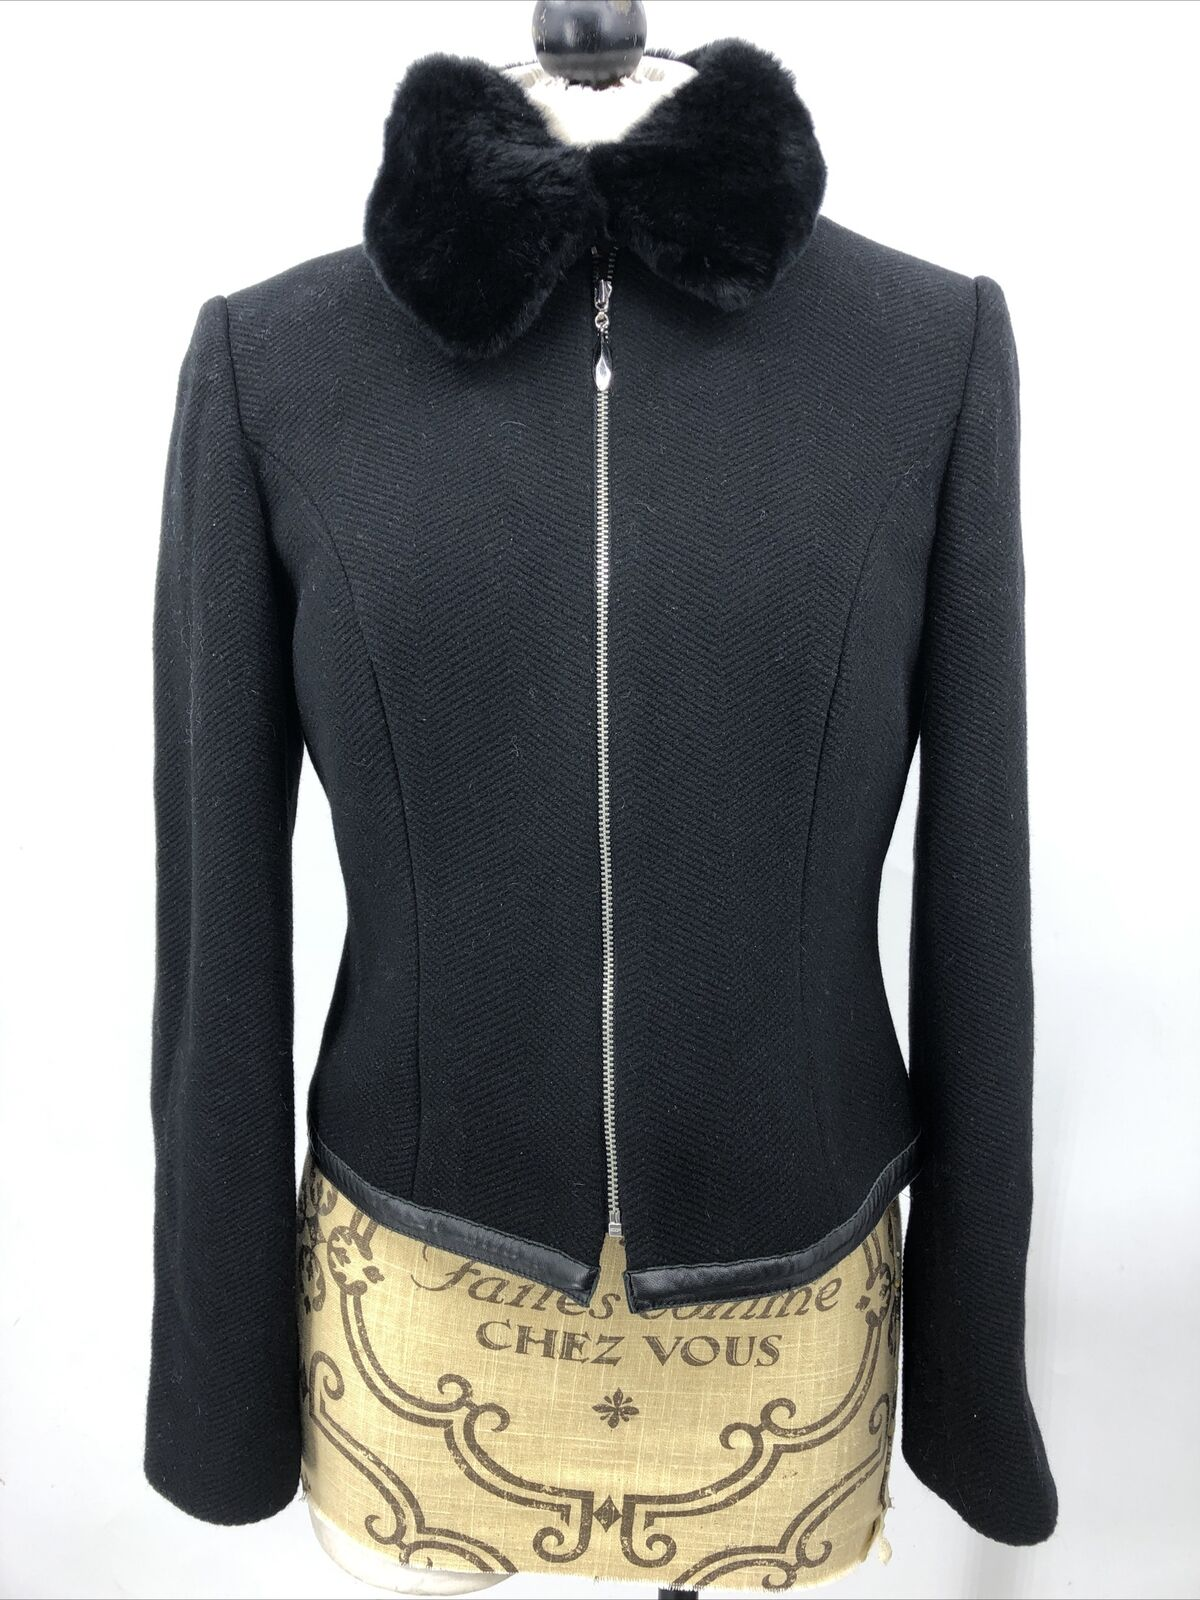 Etc Women's Jacket Black Wool Cashmere Zip Up Leather Trim Removeable Collar 4